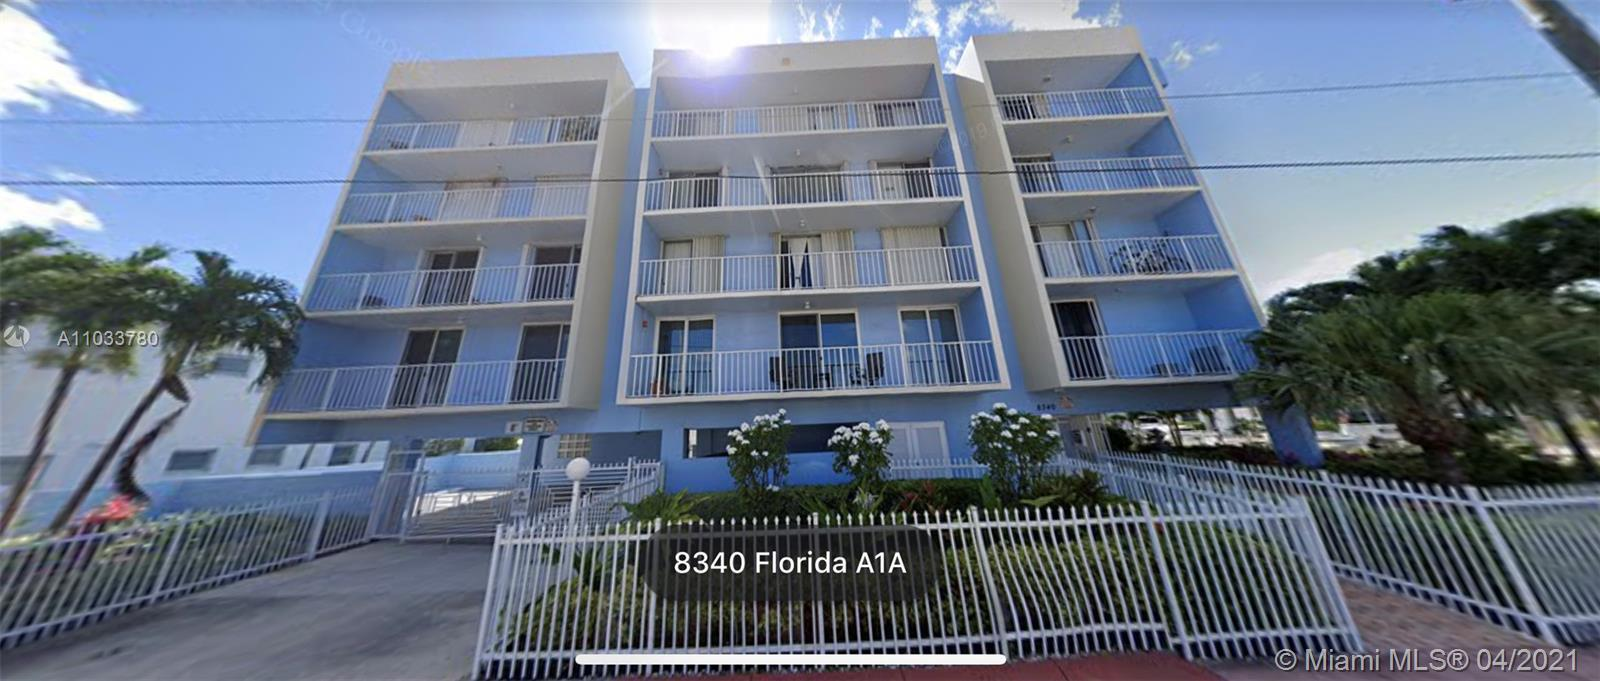 Great opportunity to leave in a quite, spacious condo.  Great location, walking distance to the beac